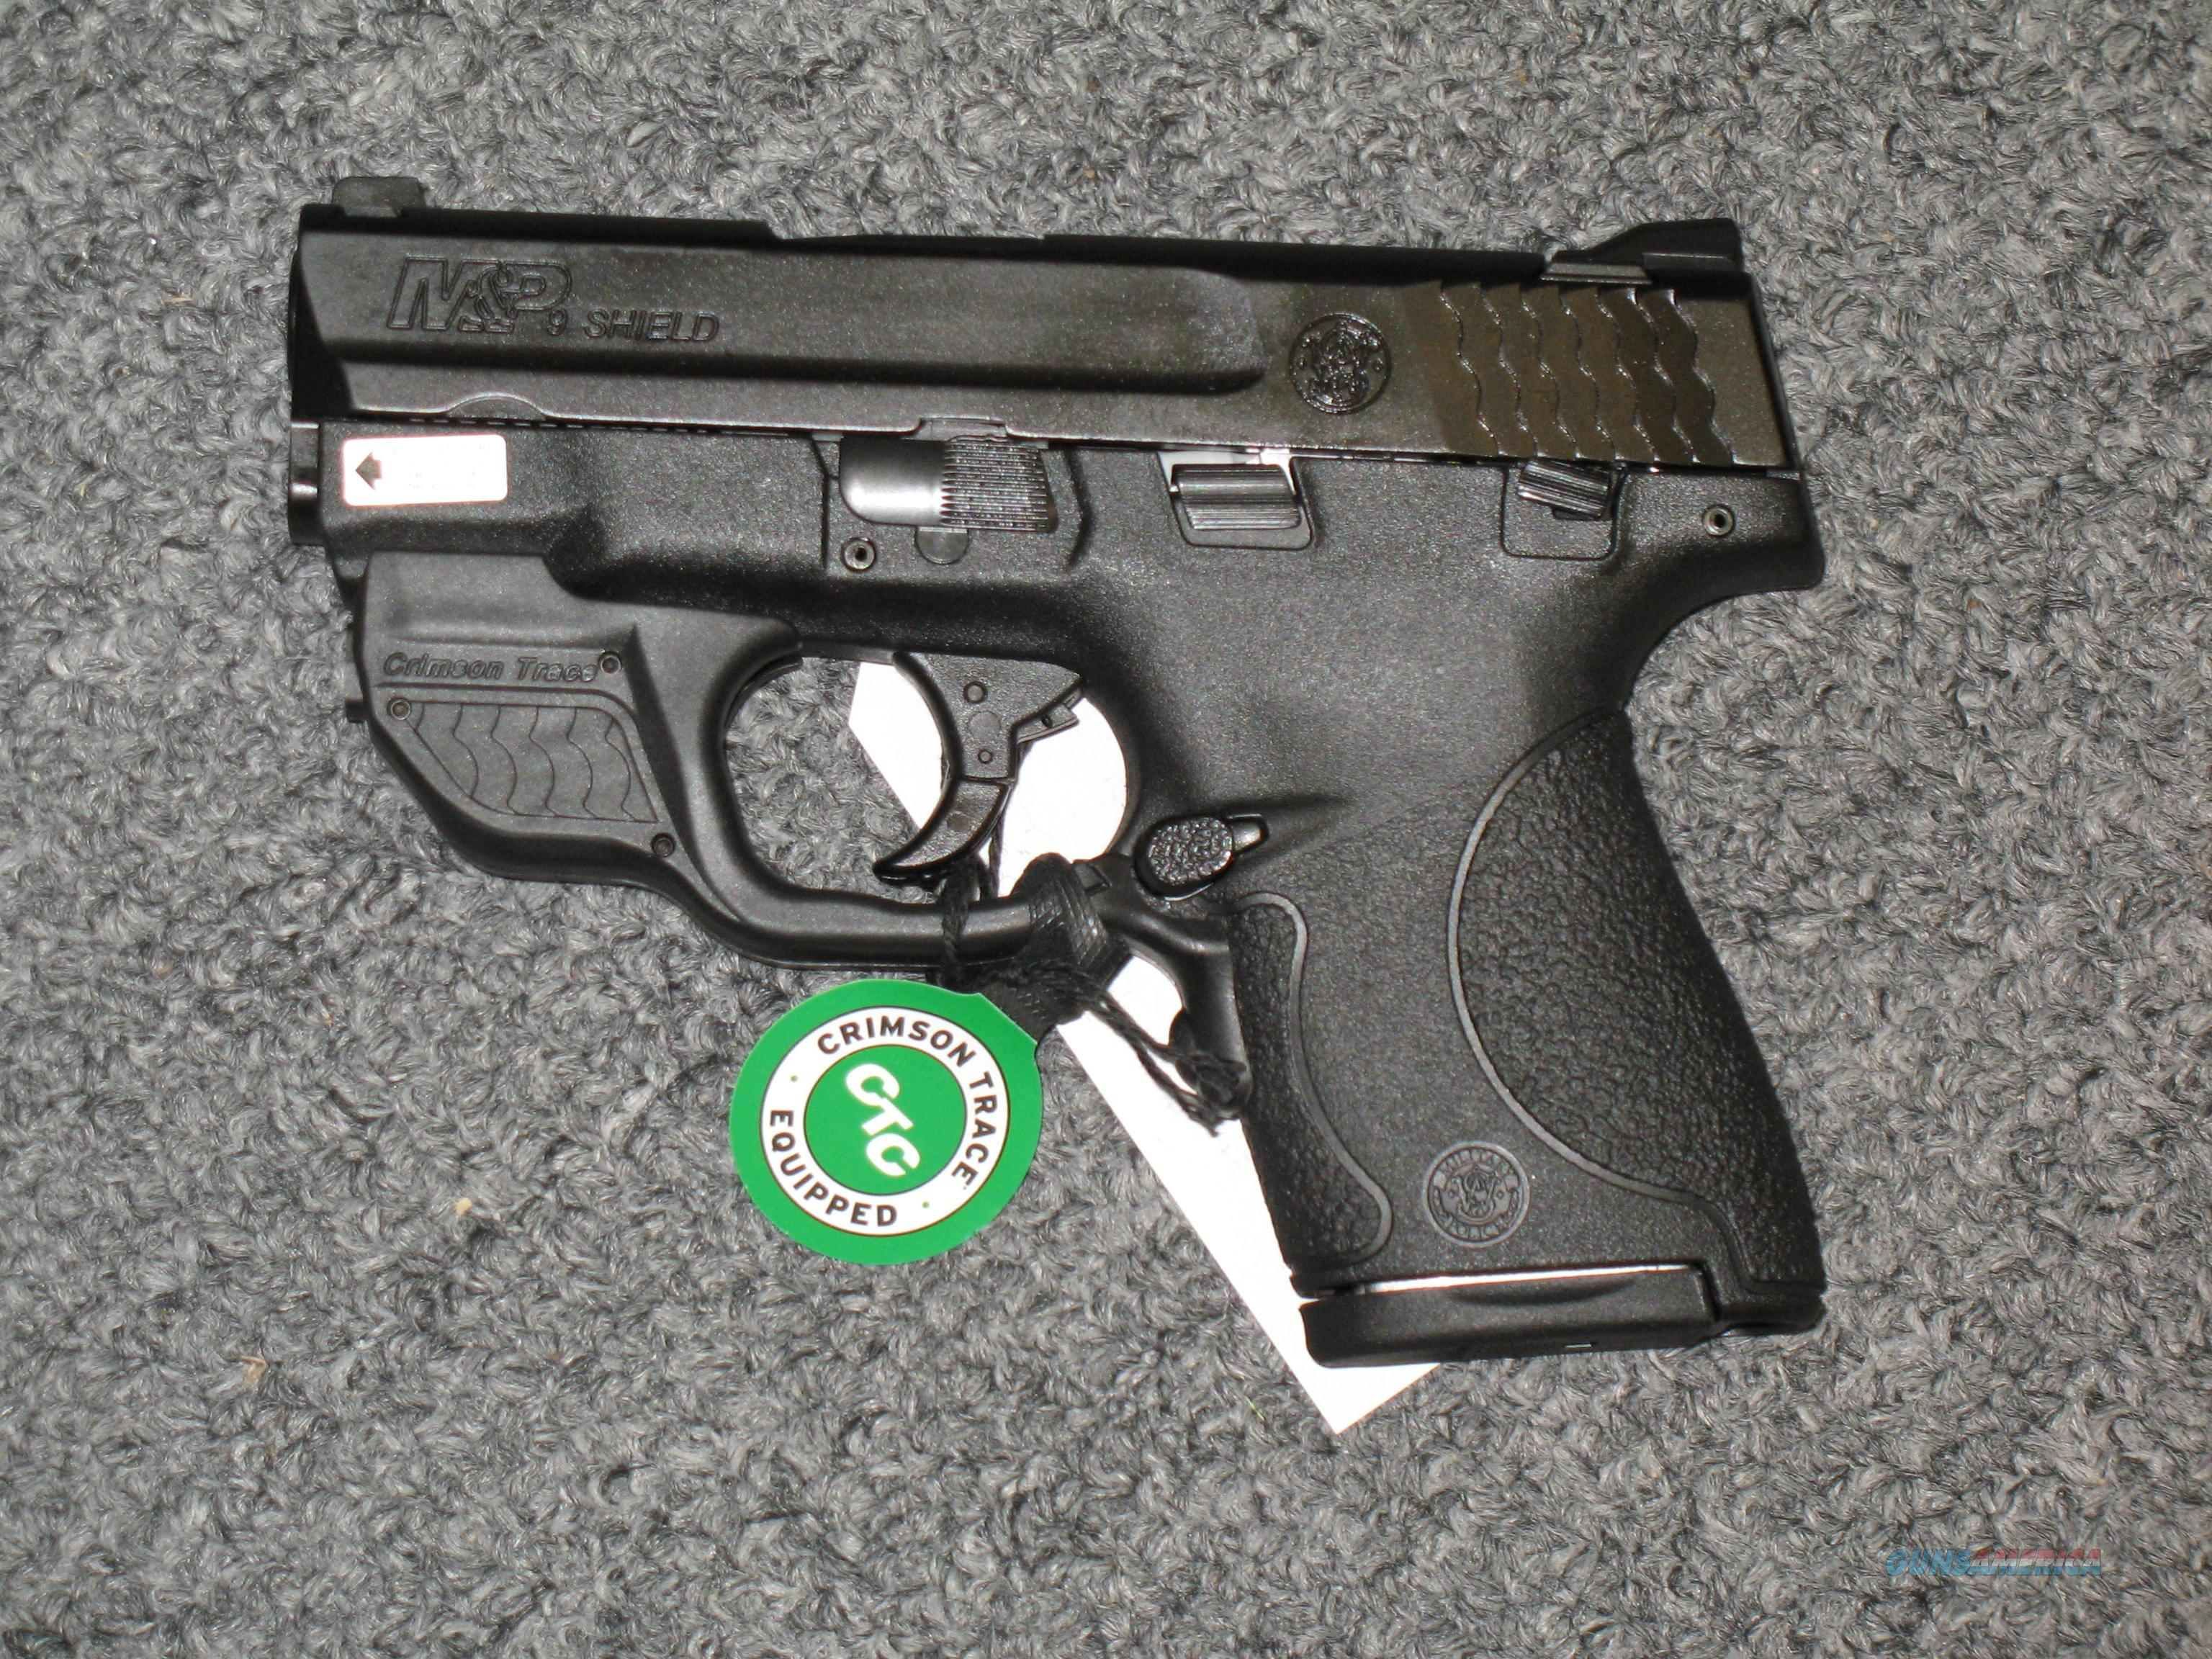 Smith & Wesson M&P 9 Shield with Crimson Trace Green Laser